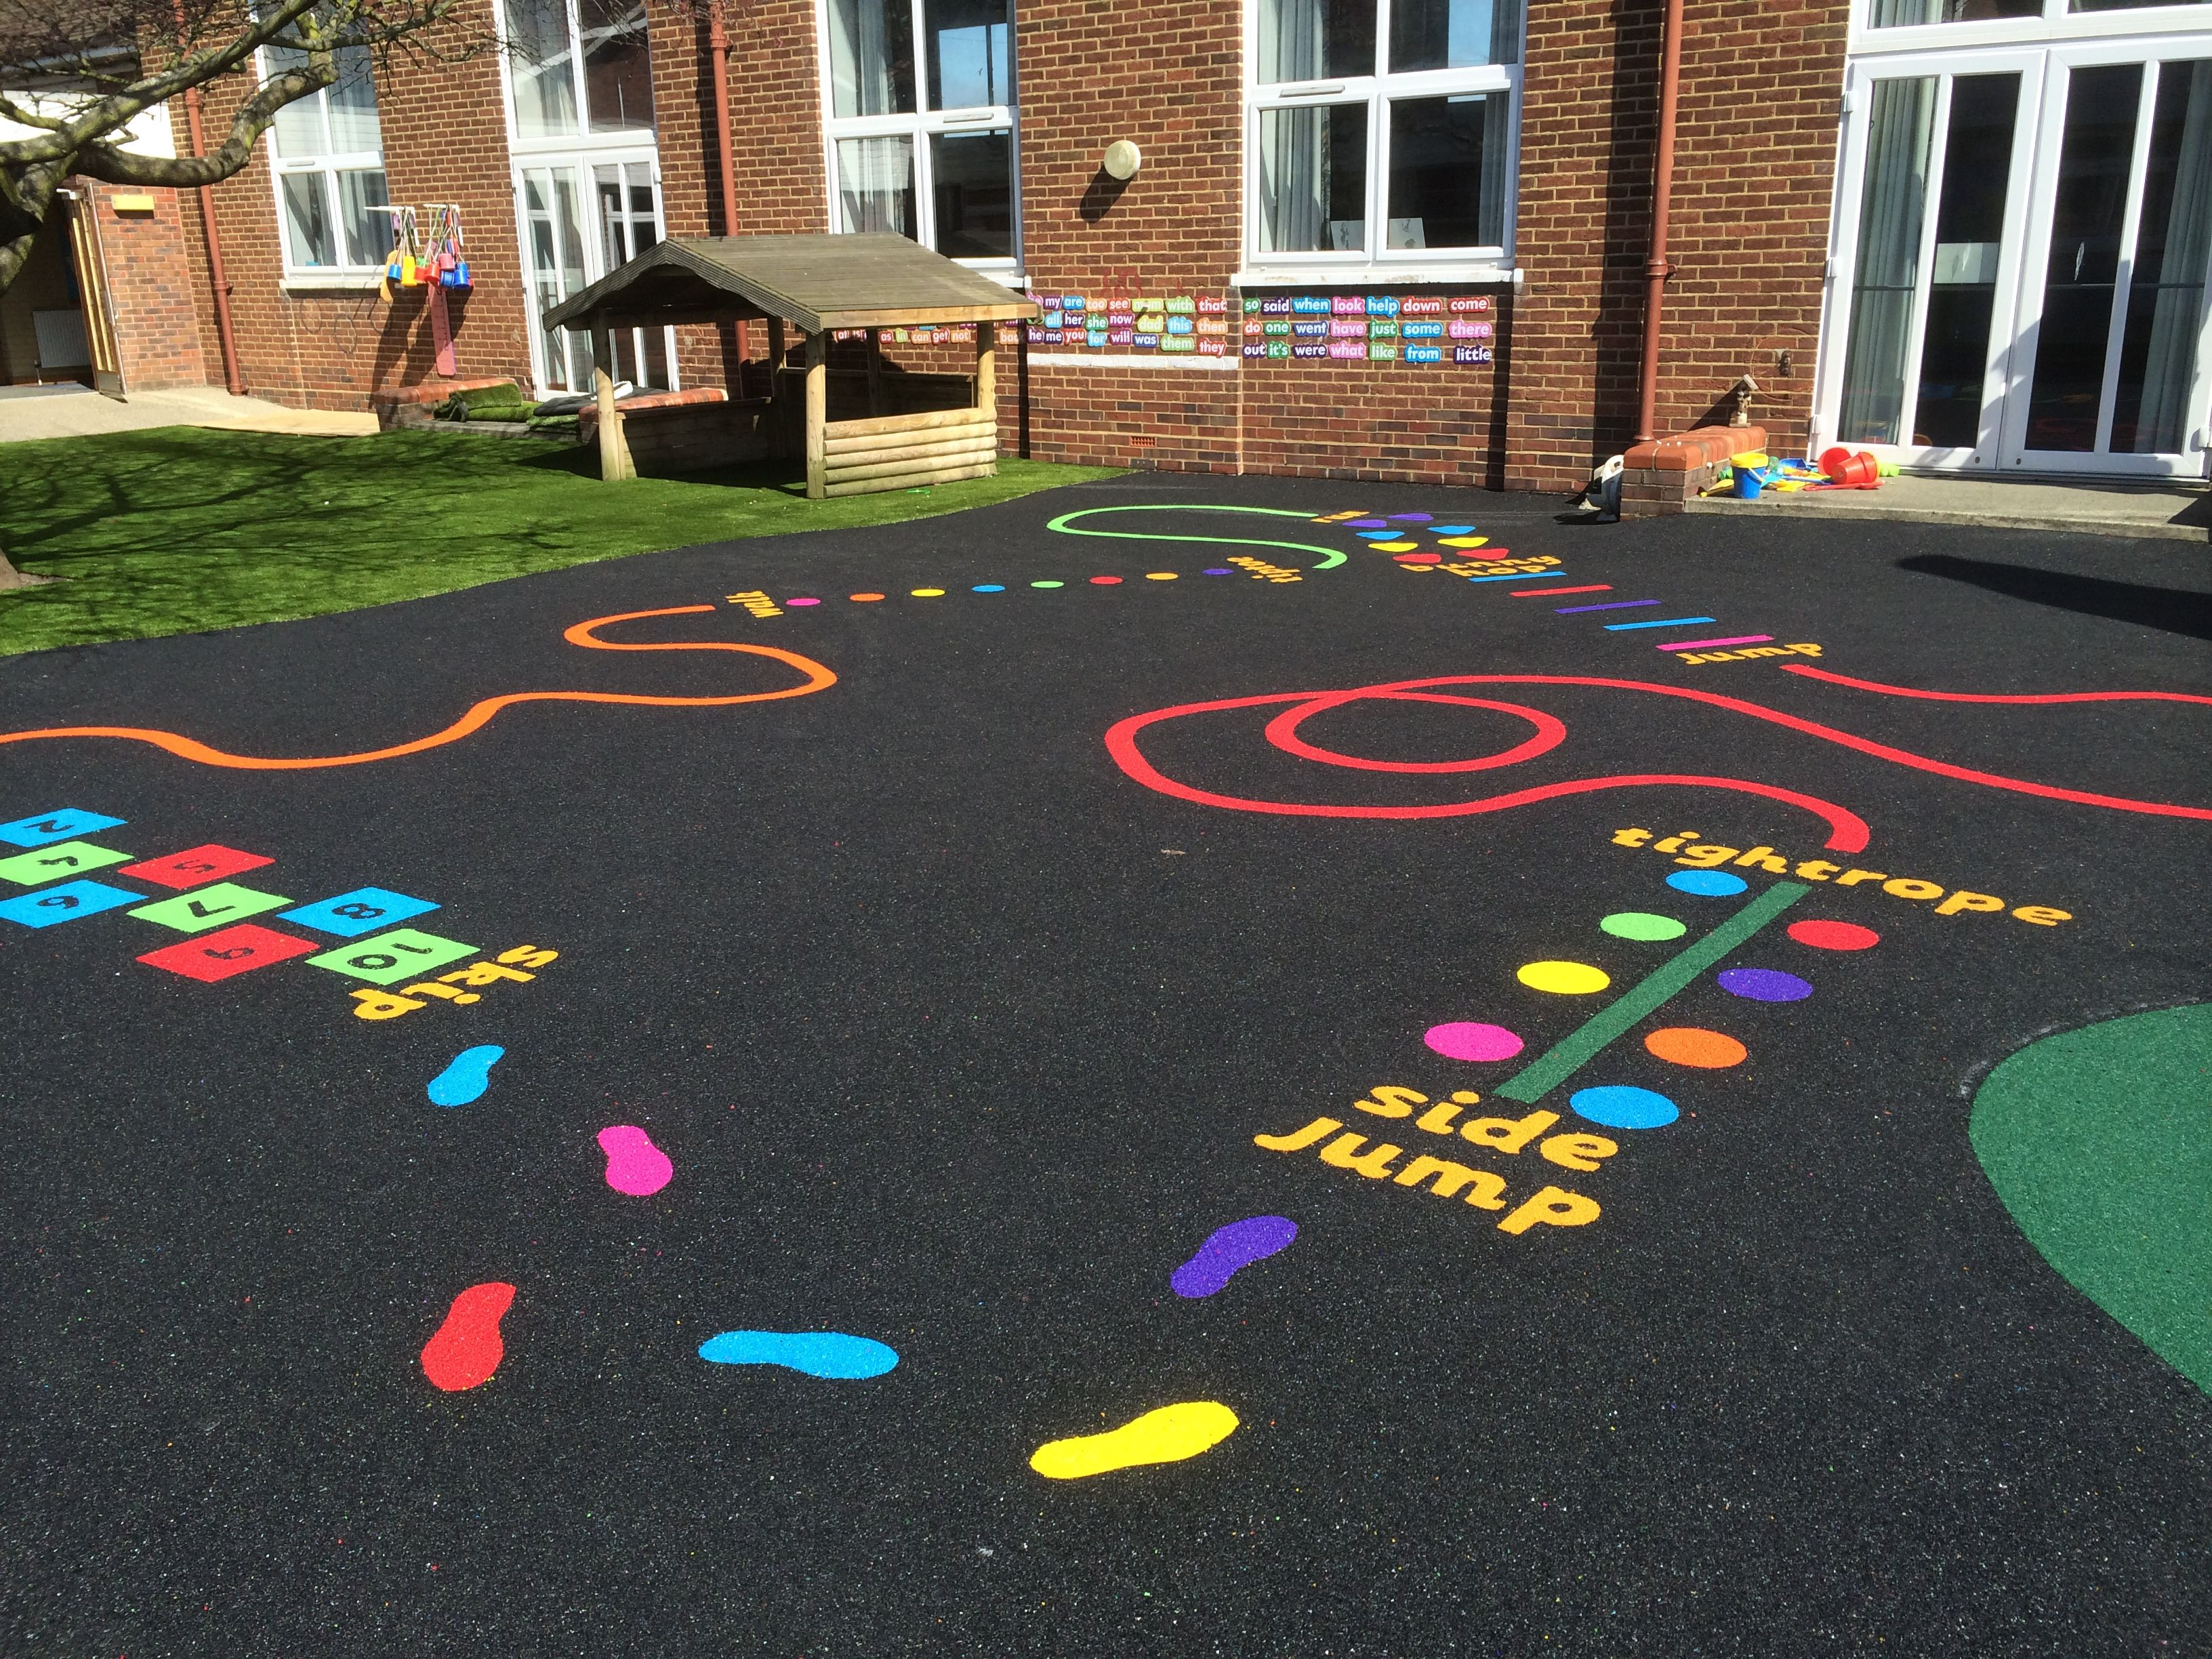 Rubber floor mats for wet areas - Wet Pour Rubber Flooring Artificial Grass School Playground